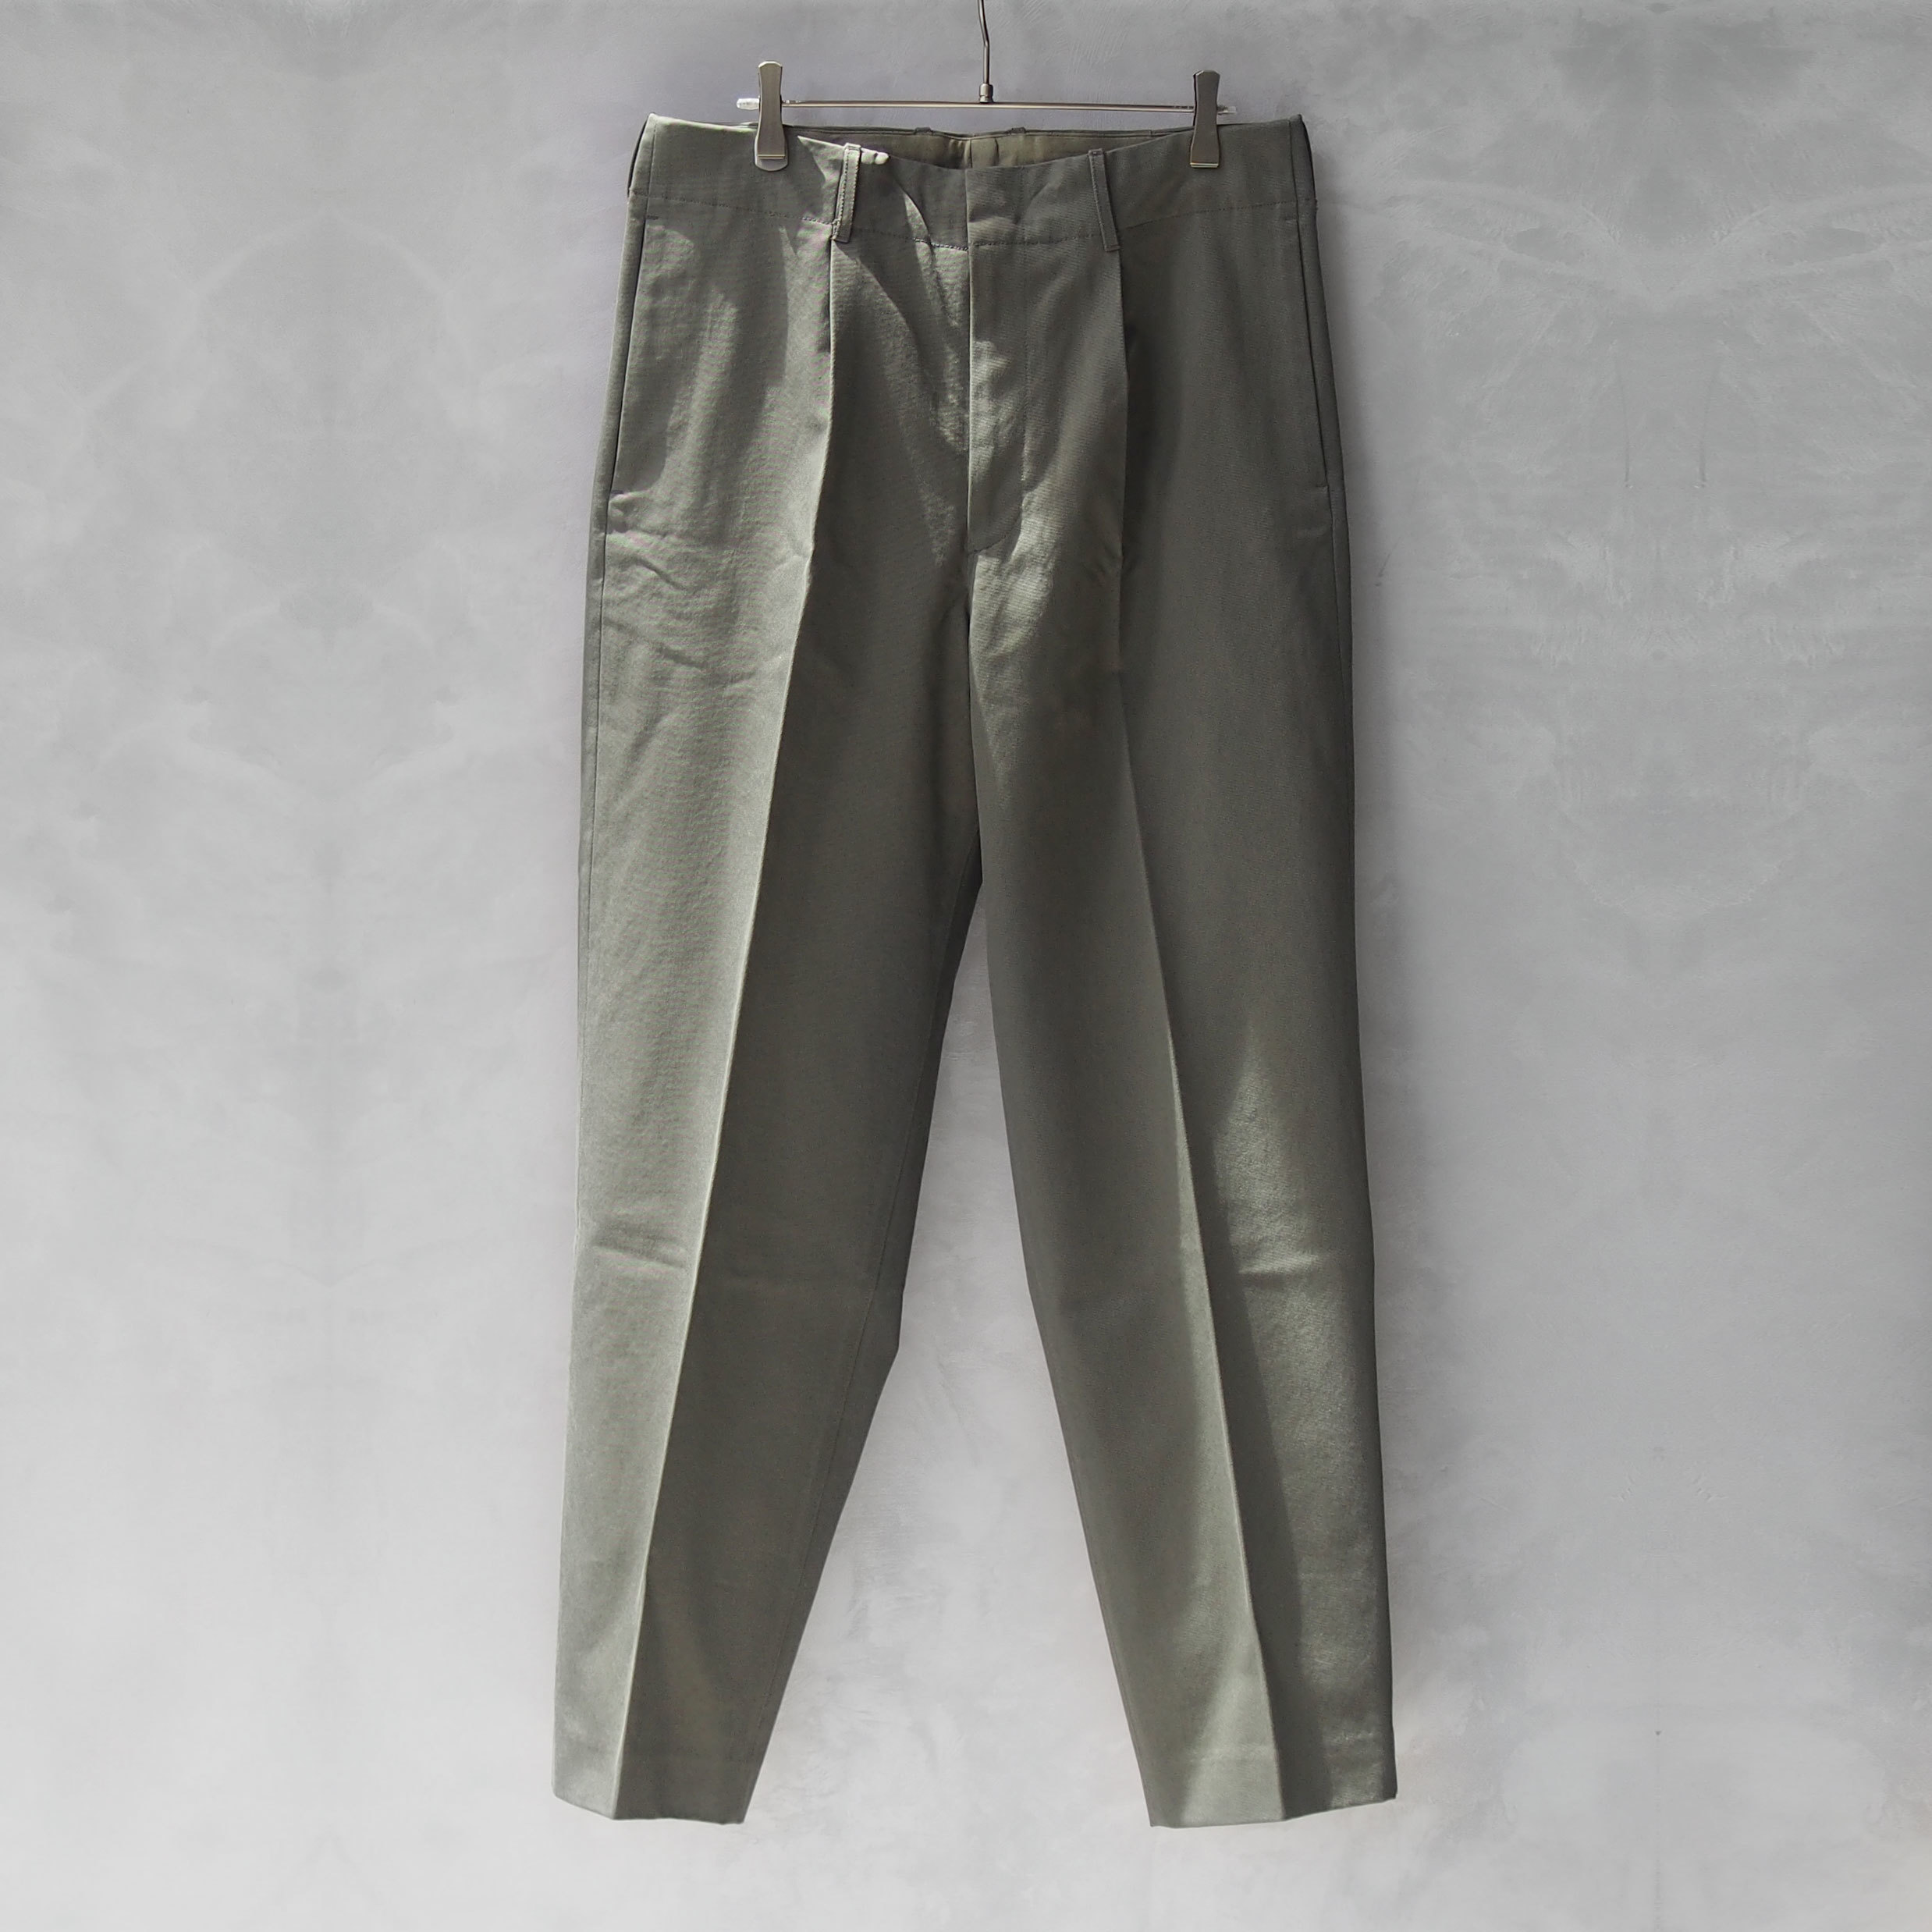 AURALEE WASHED FINX CHINO TAPERED PANTS OLIVE